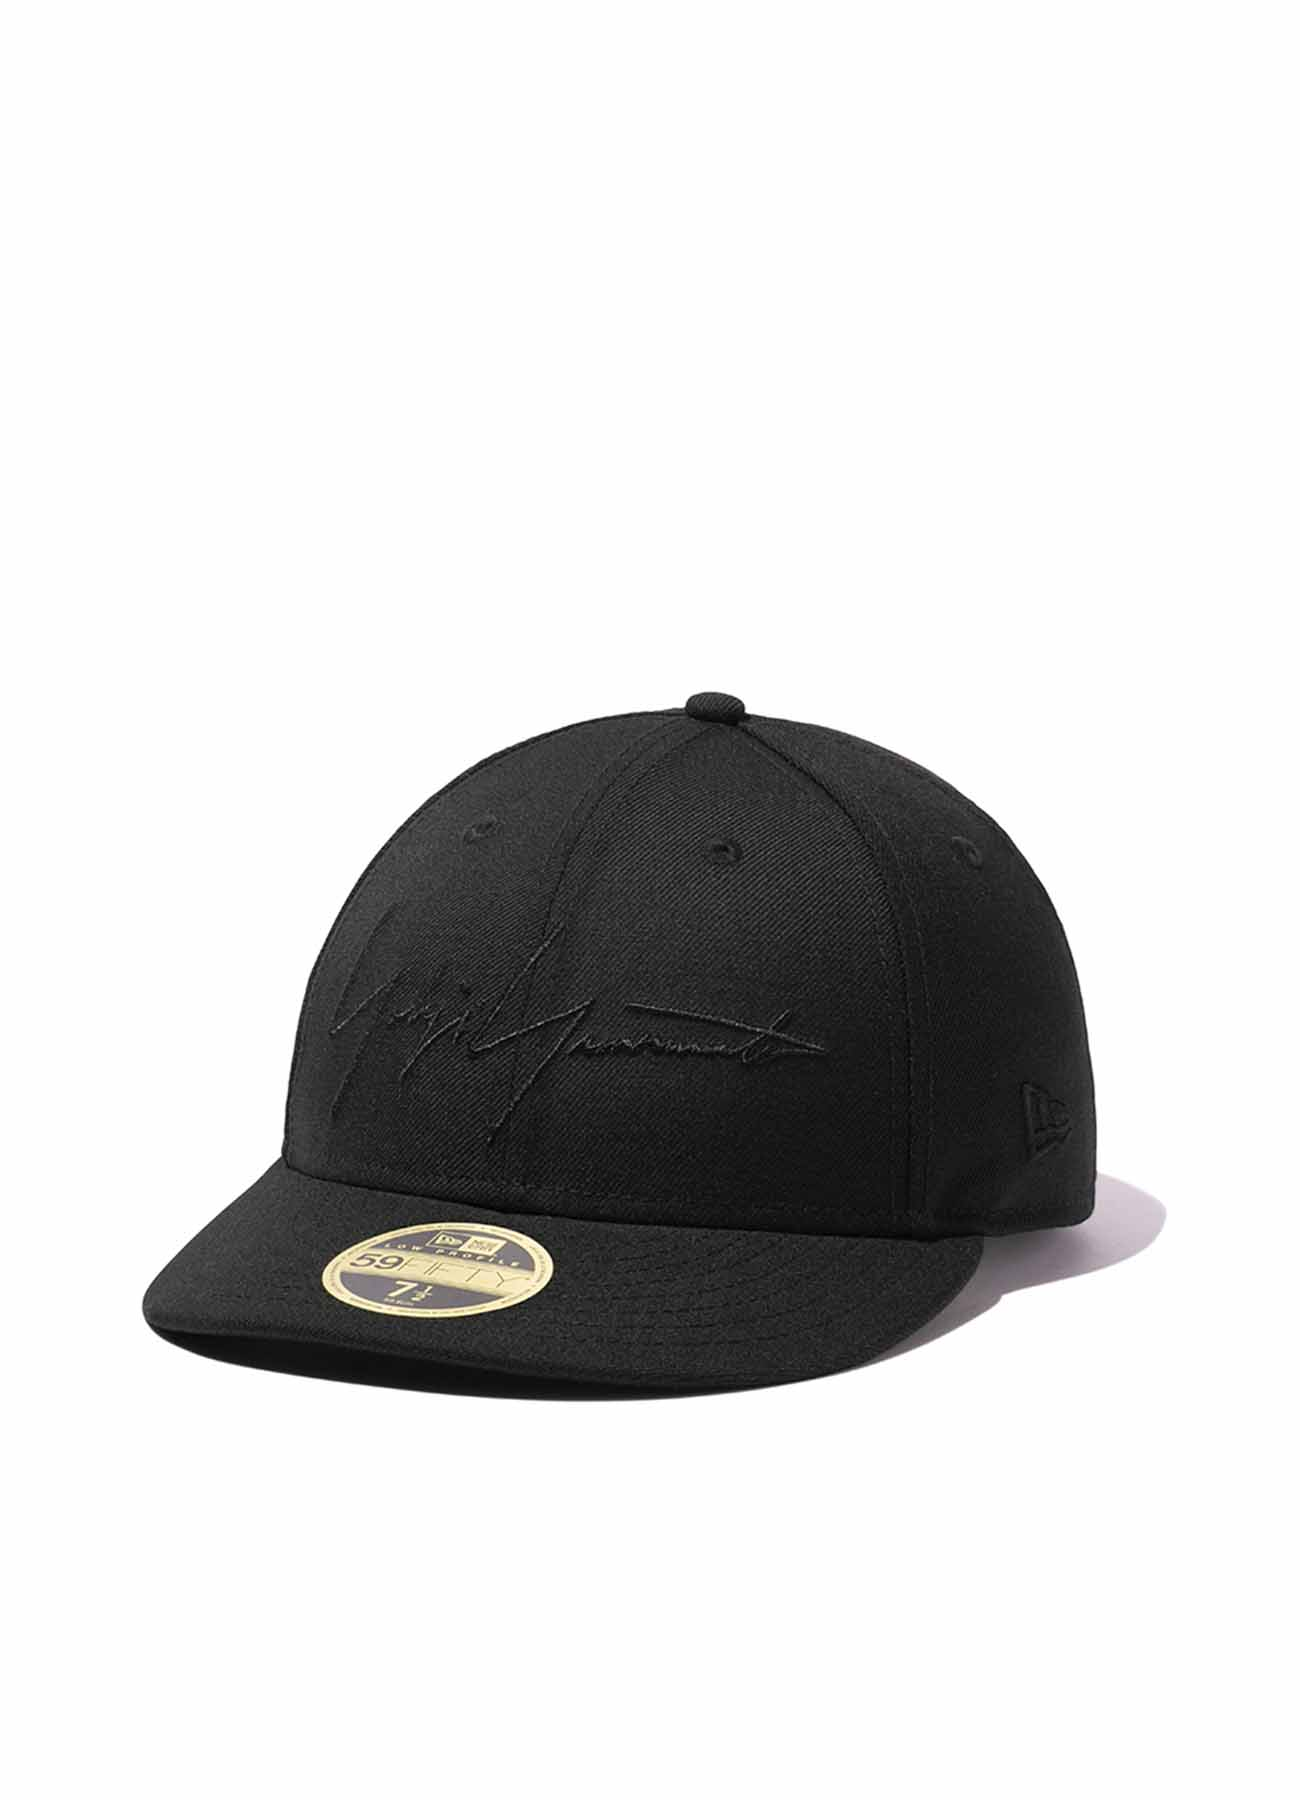 Yohji Yamamoto × New Era BLACK SERGE LOW PROFILE 59FIFTY LOGO BLACK/BLACK